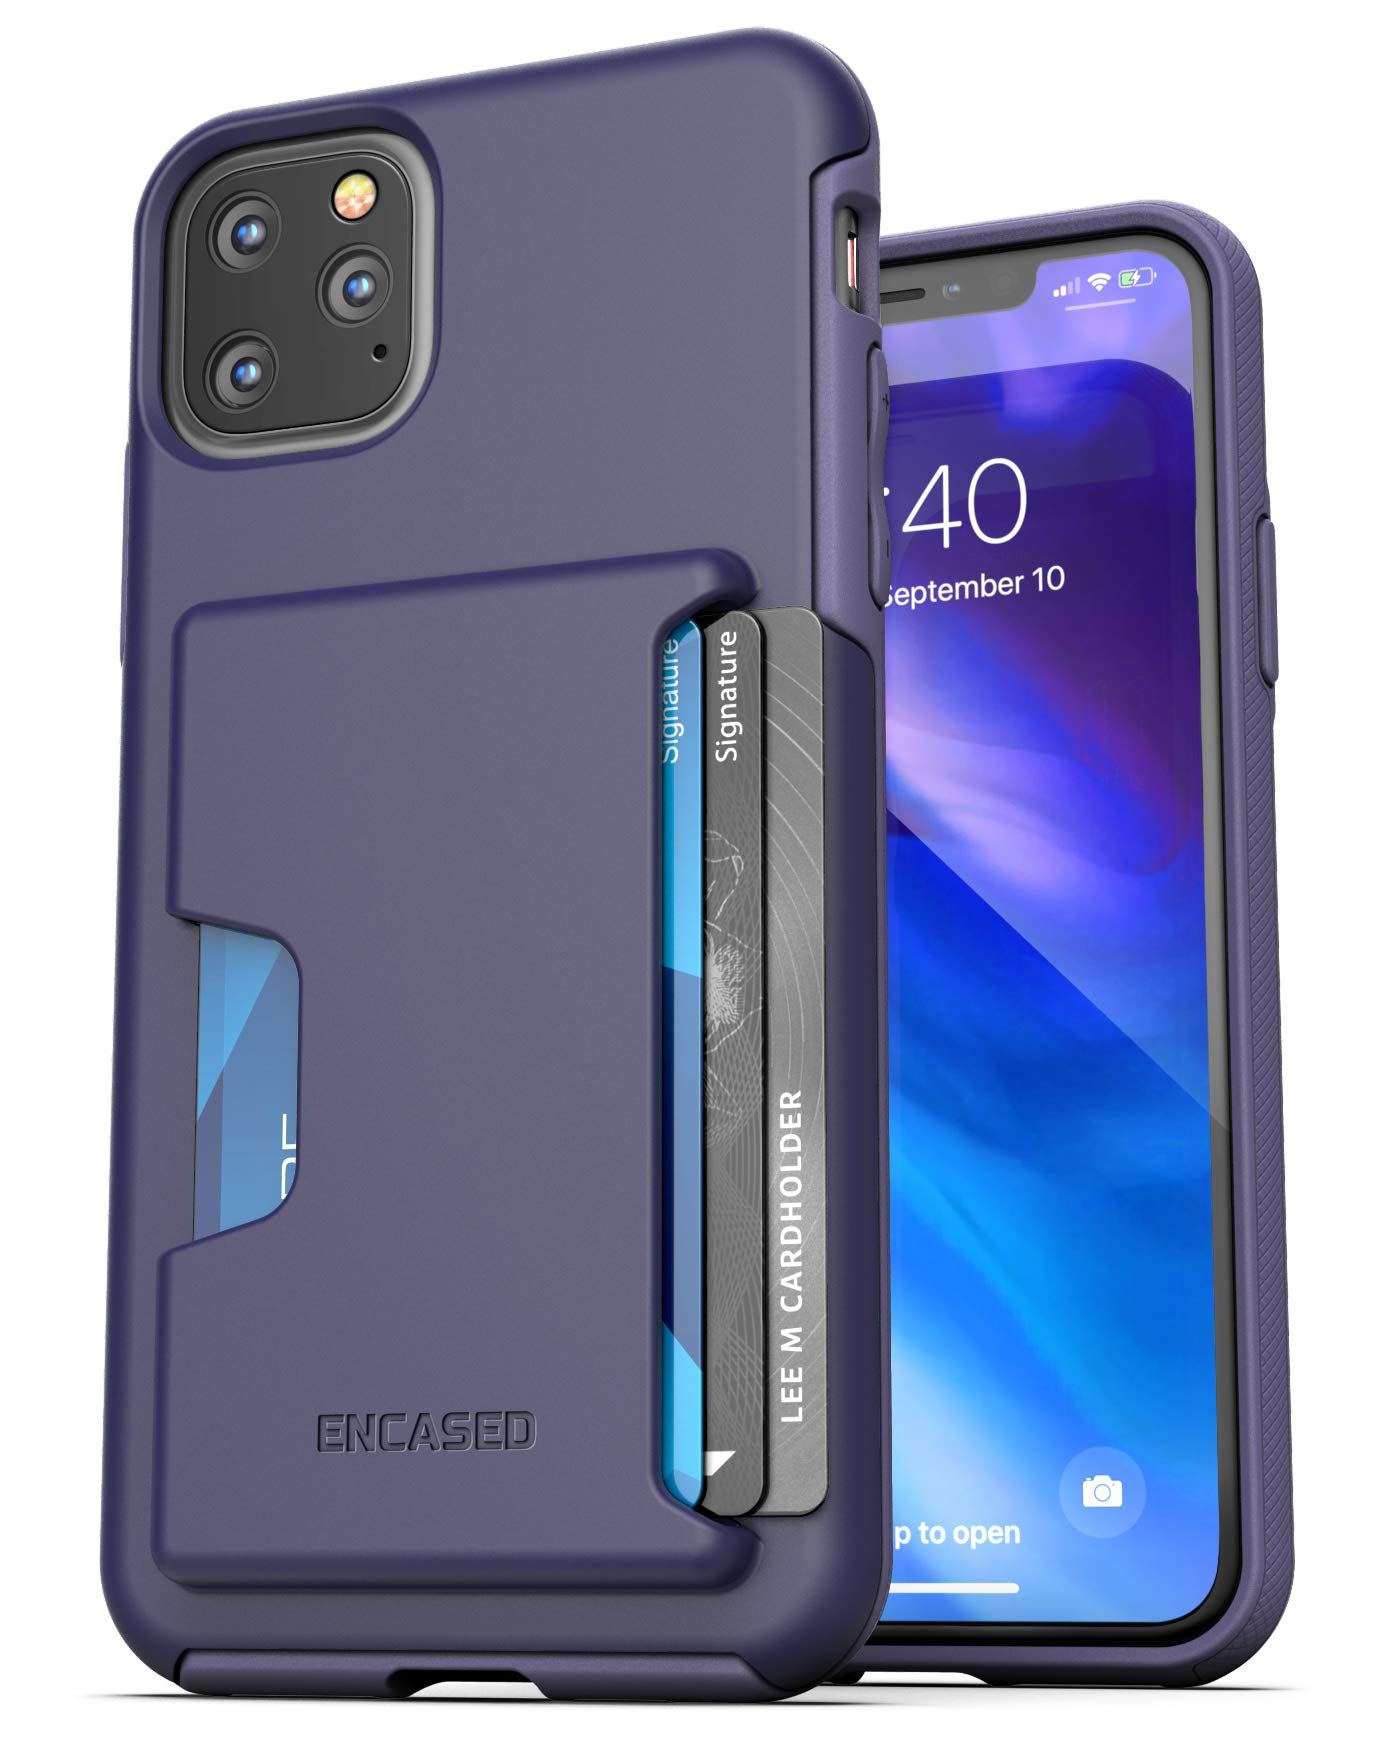 Encased iPhone 11 Pro Max Wallet Case (2019) Ultra Durable Cover with Card Holder Slot (4 Credit Cards Capacity) Purple